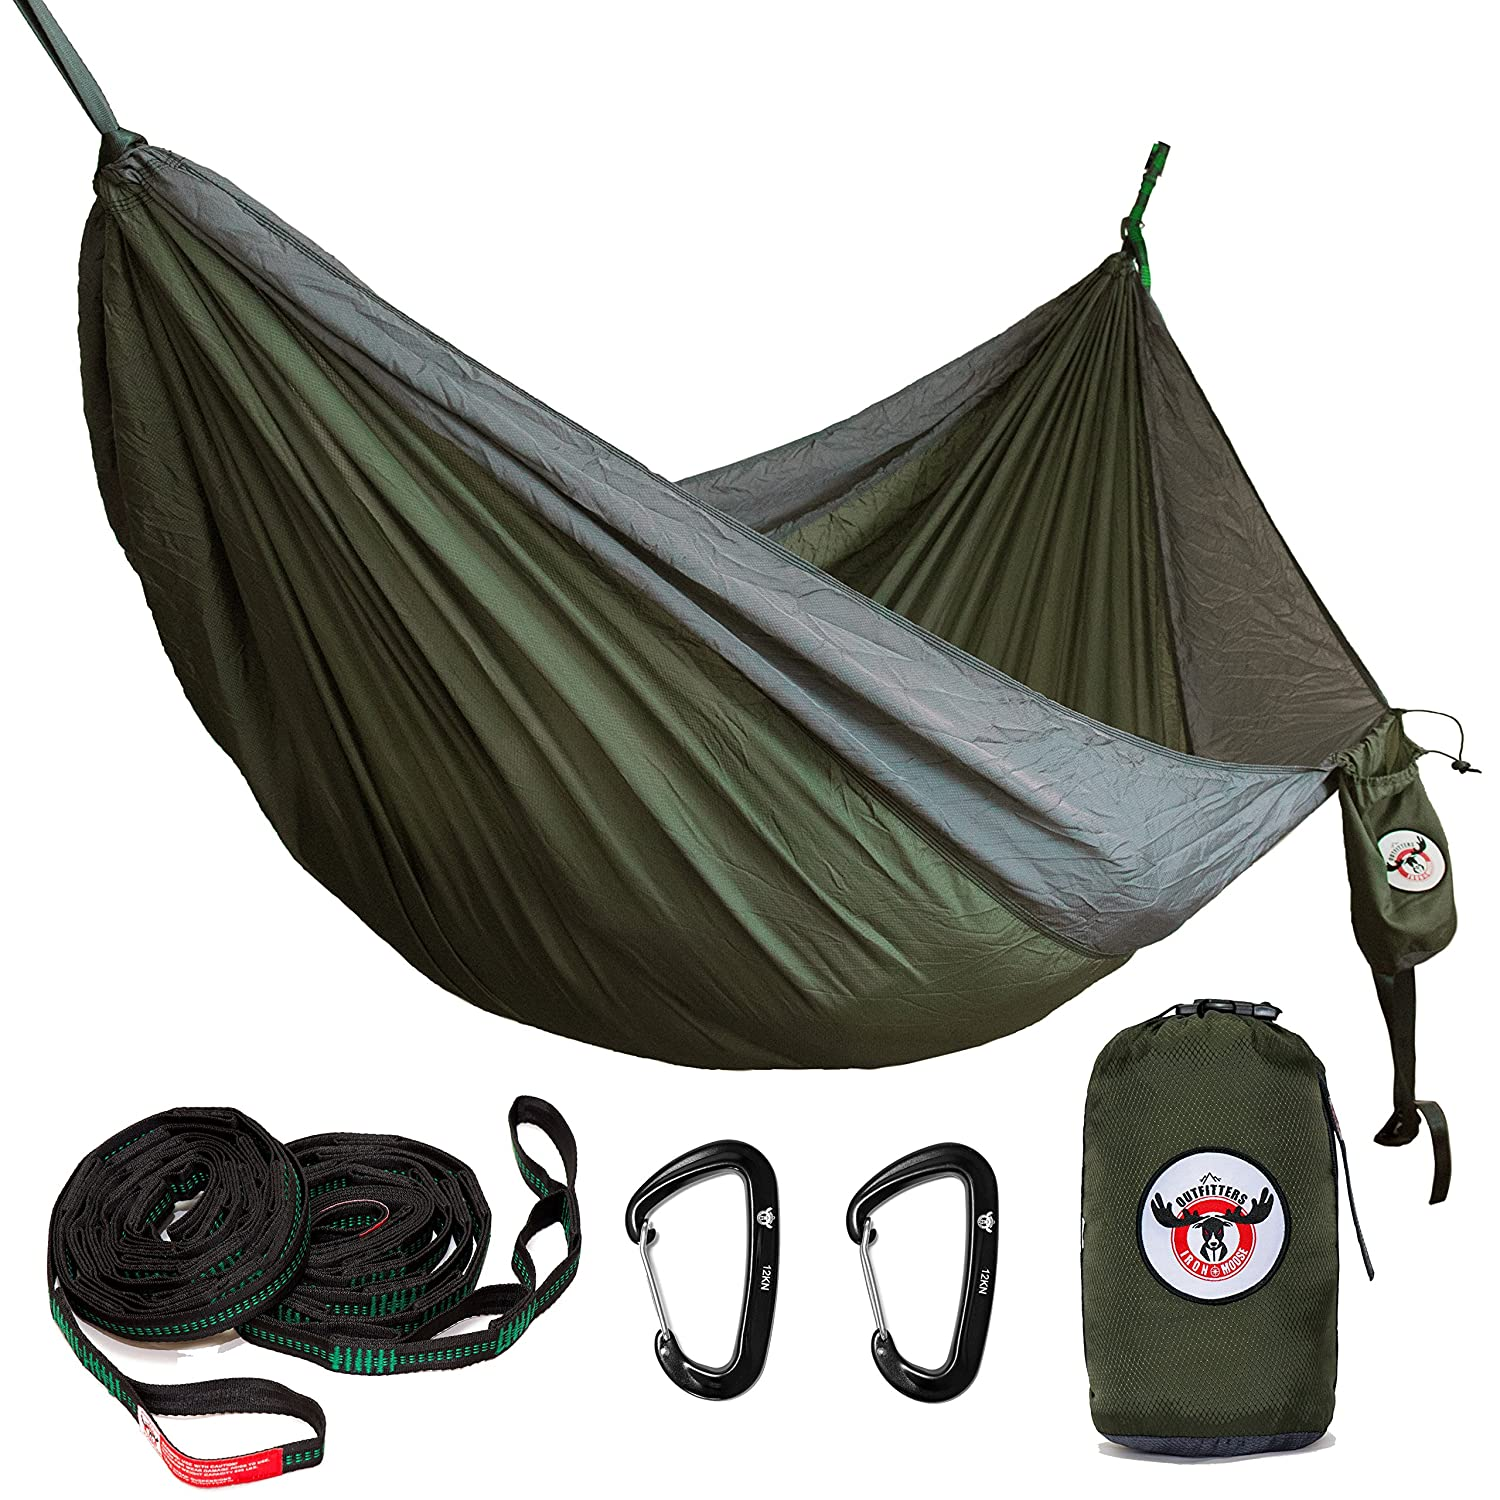 Iron Moose Outfitters Outdoor Double Camping Hammock Gear Set By includes Tear Resistant Rip-Stop Nylon Hammock fits two person, 12KN Wiregate Carabiners and Heavy-Duty Tree Straps